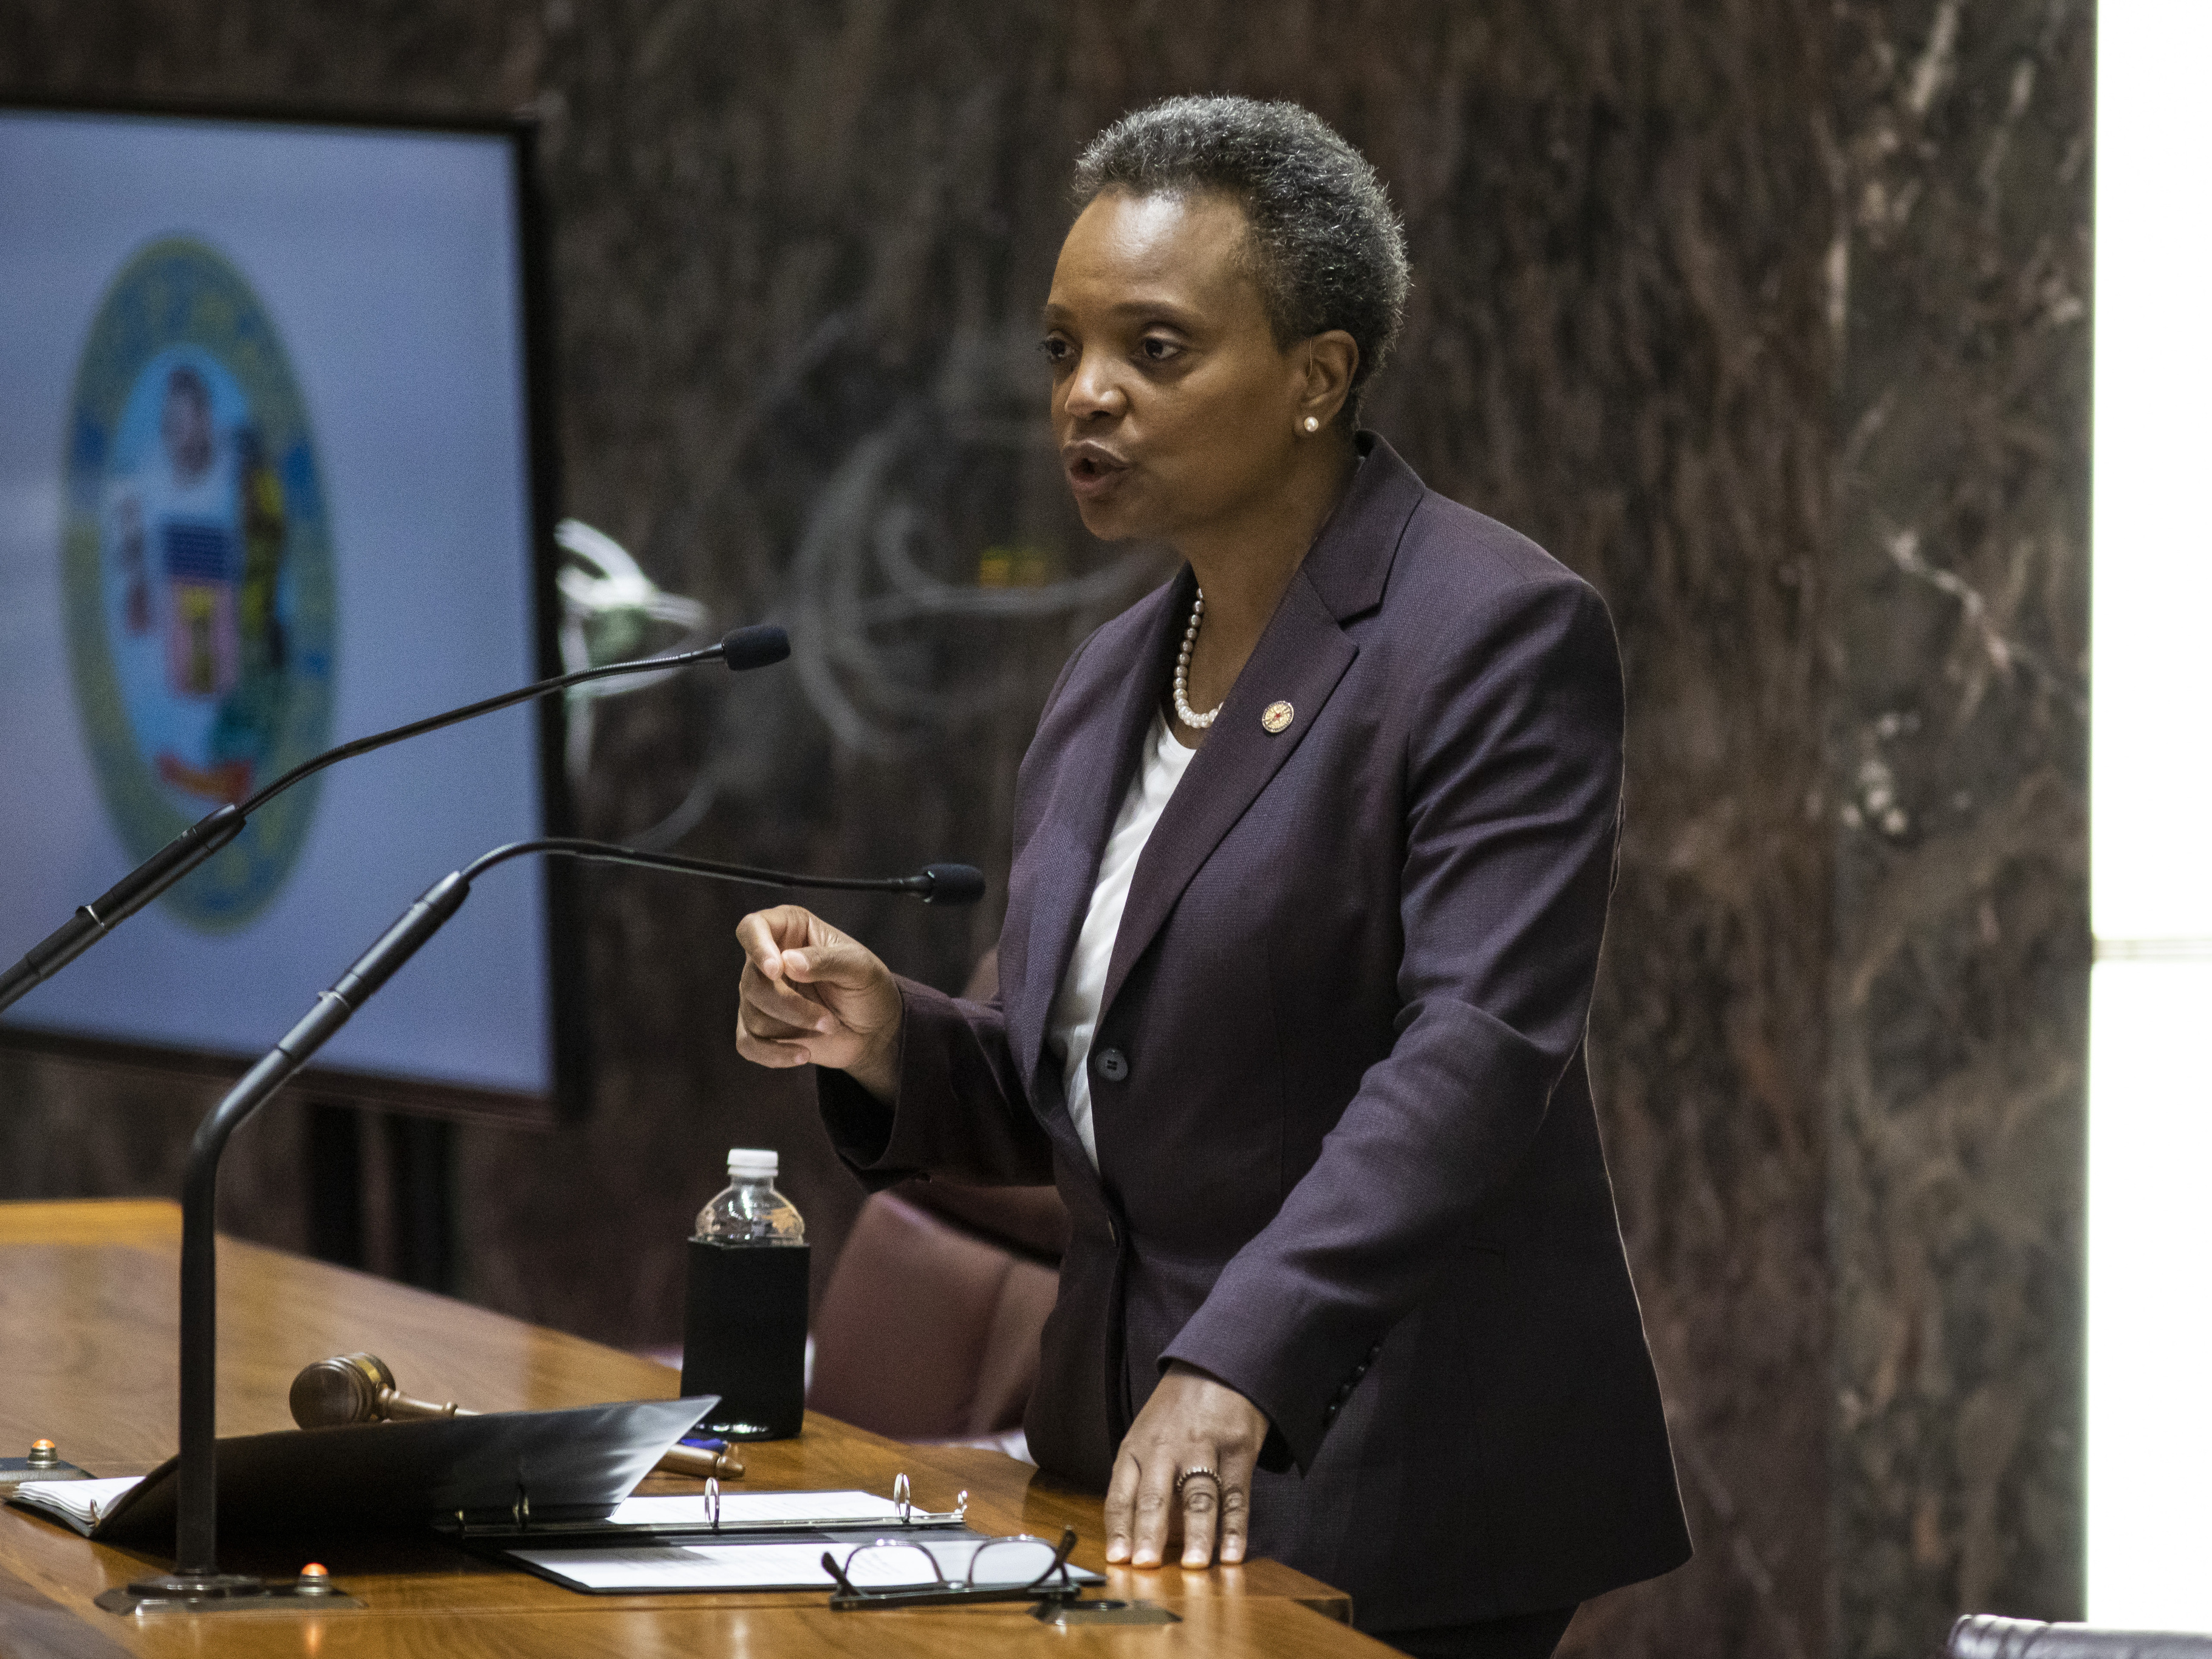 Chicago Mayor Lori Lightfoot delivers her first budget address at City Hall, Wednesday, Oct. 23, 2019.